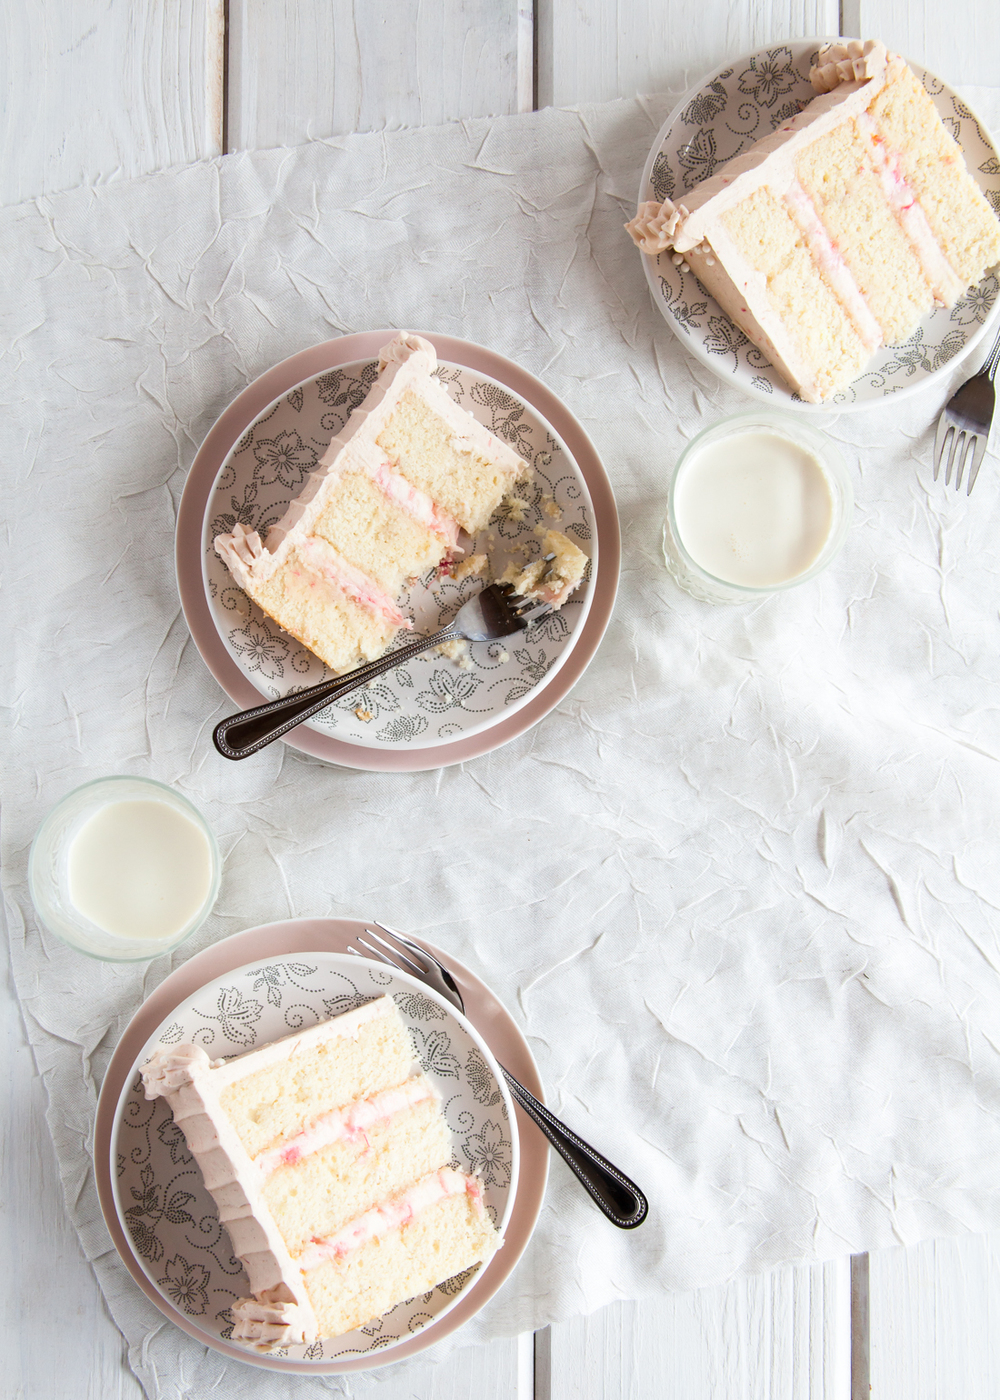 Rhubarb Ginger Layer Cake